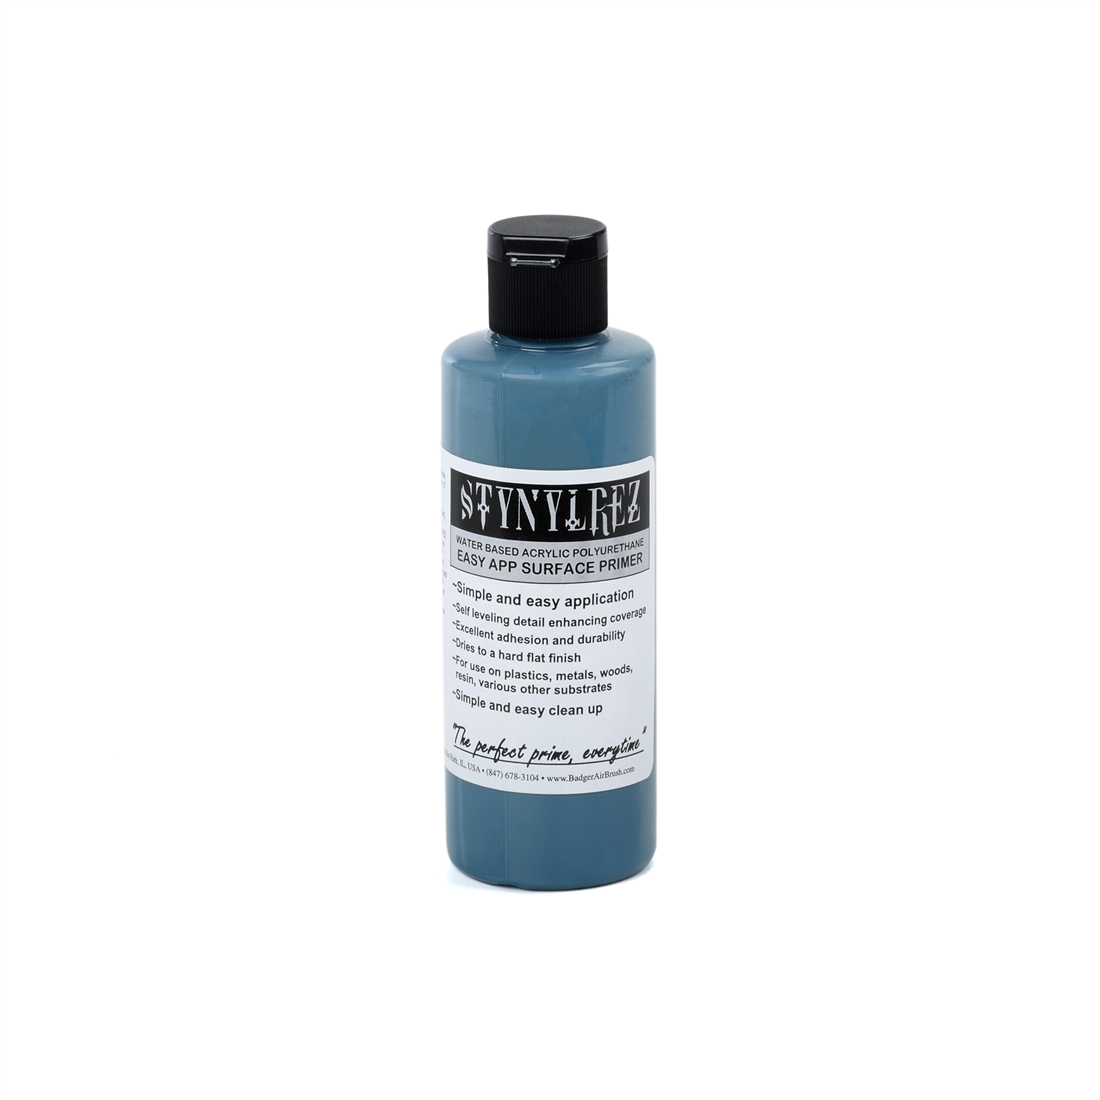 411Badger Stynylrez ocean blu 120 ml.